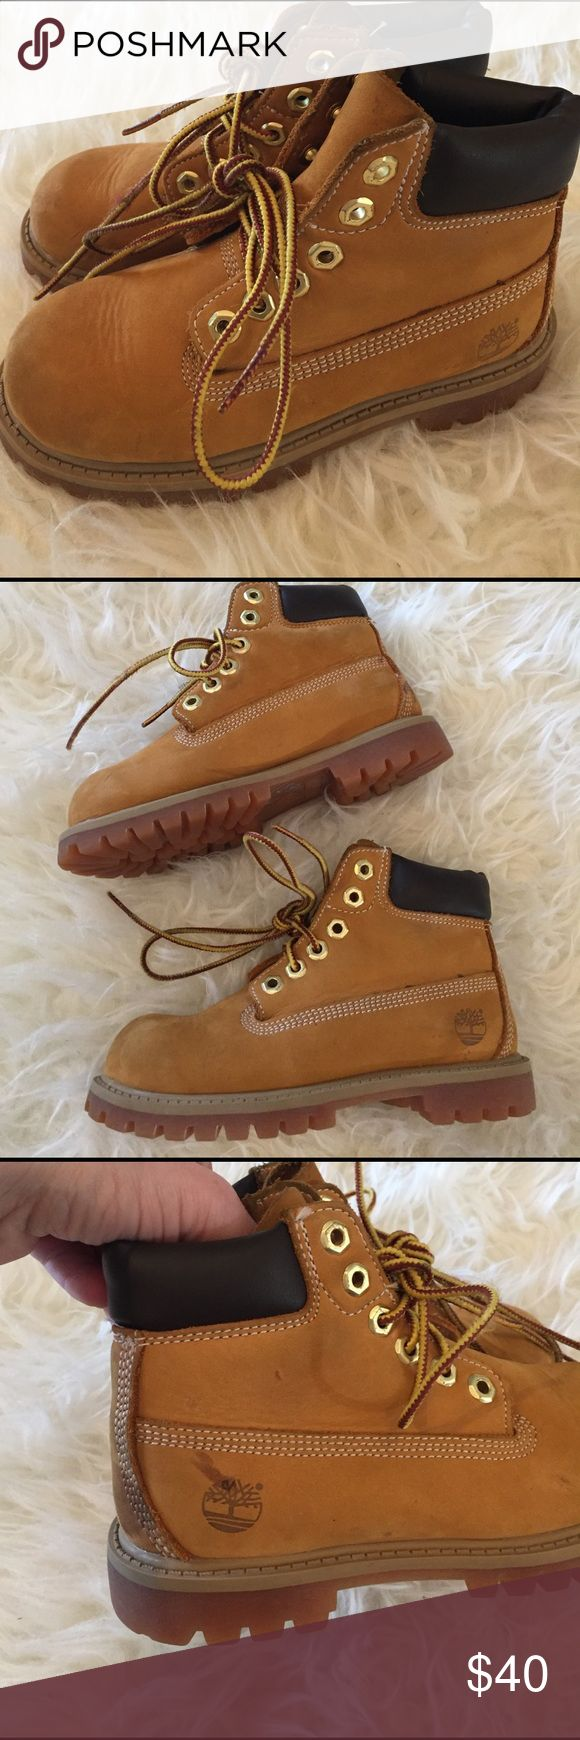 Timberland Boots Toddler Boy Timberland boots in great condition.  Barely worn, but they have a few stains as pictured.  No wear on the soles. Timberland Shoes Boots